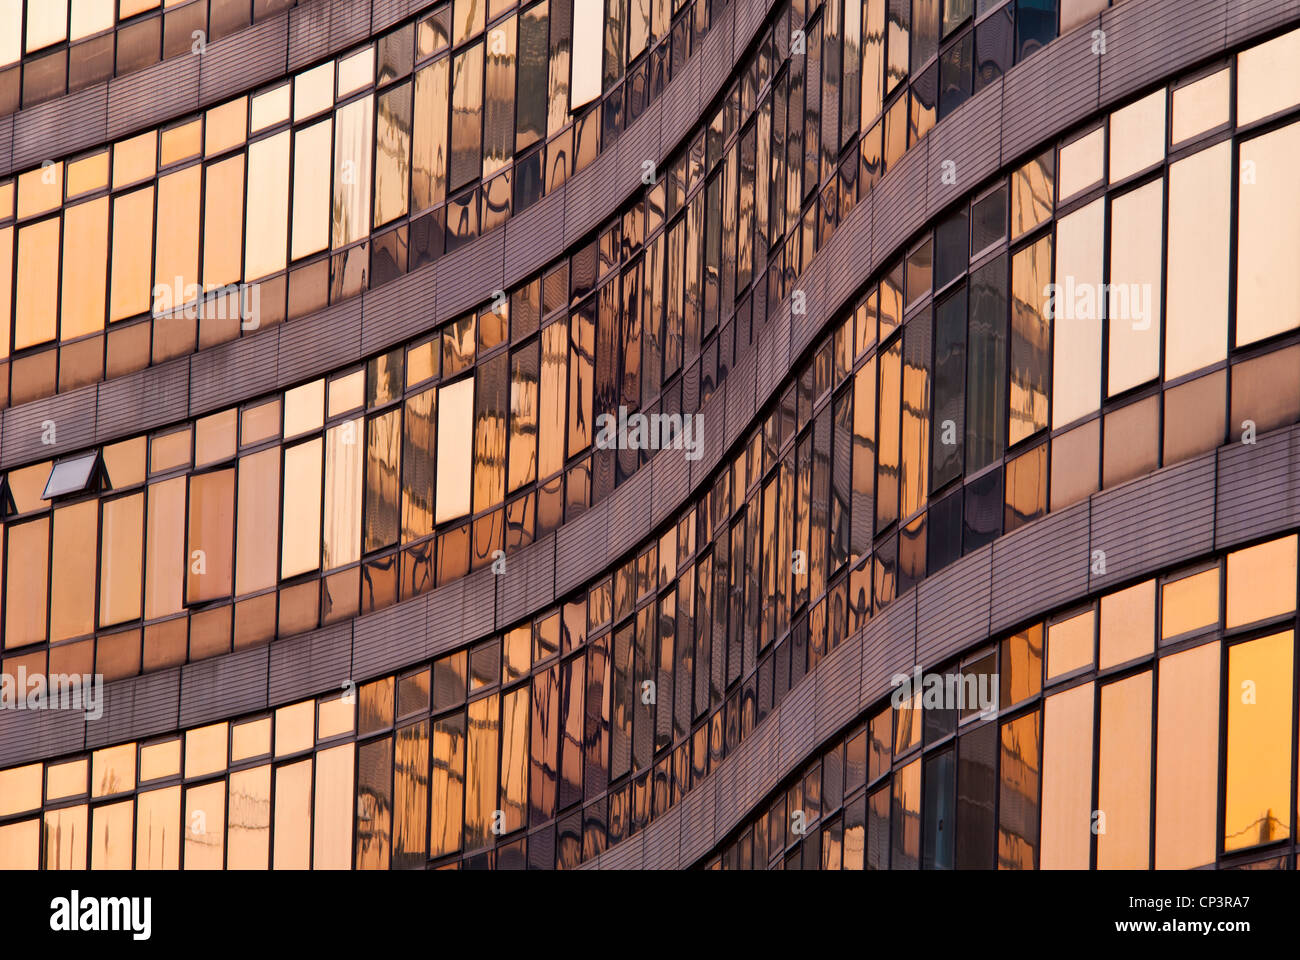 Curves of a building with mirror glass windows, Manchester, England, UK - Stock Image